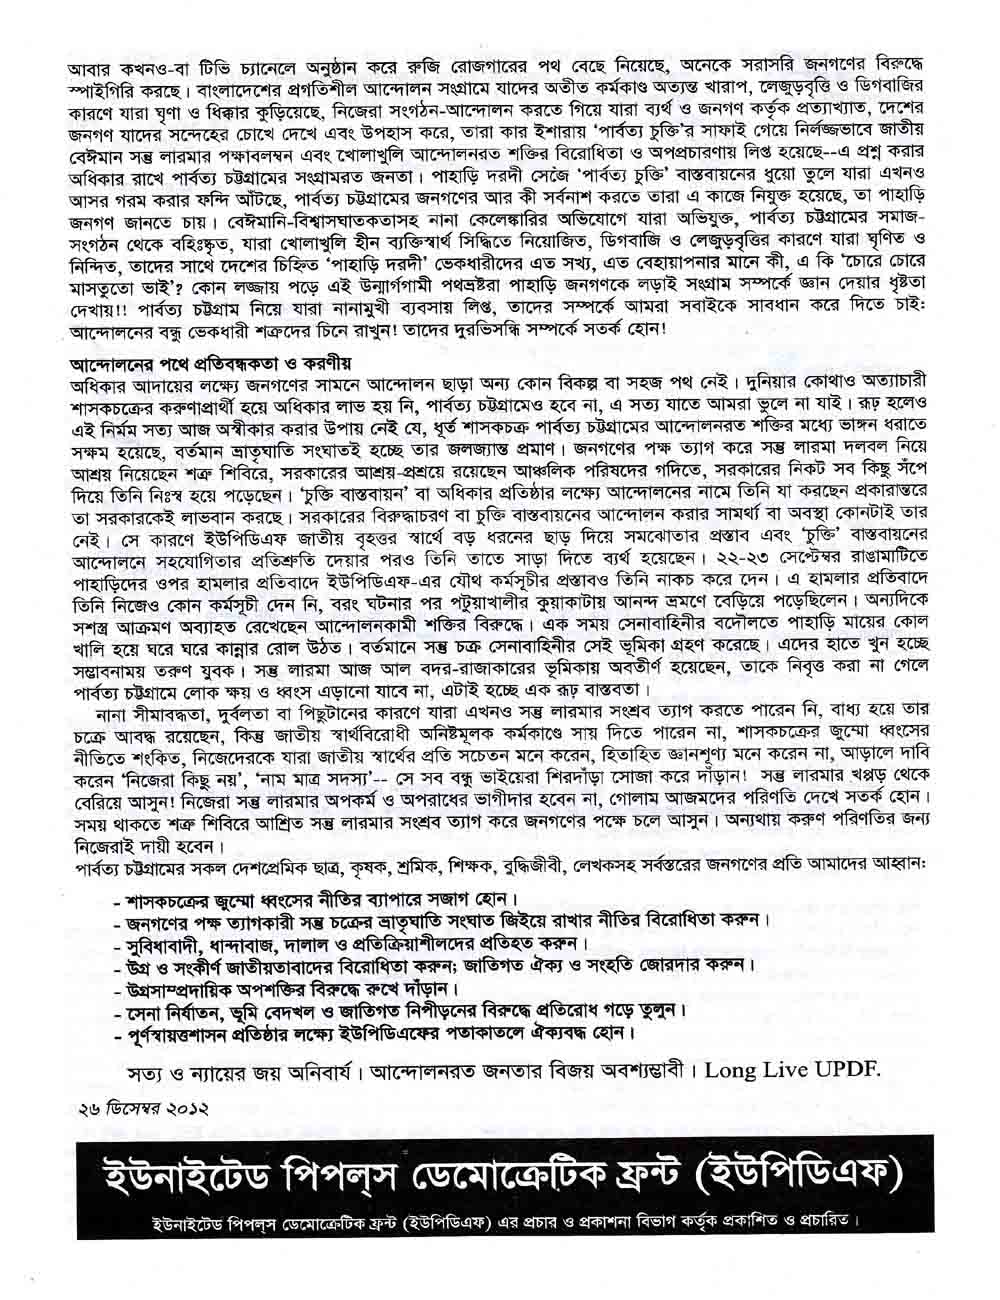 14. Leaflet on 14th founding anniversary, page-4